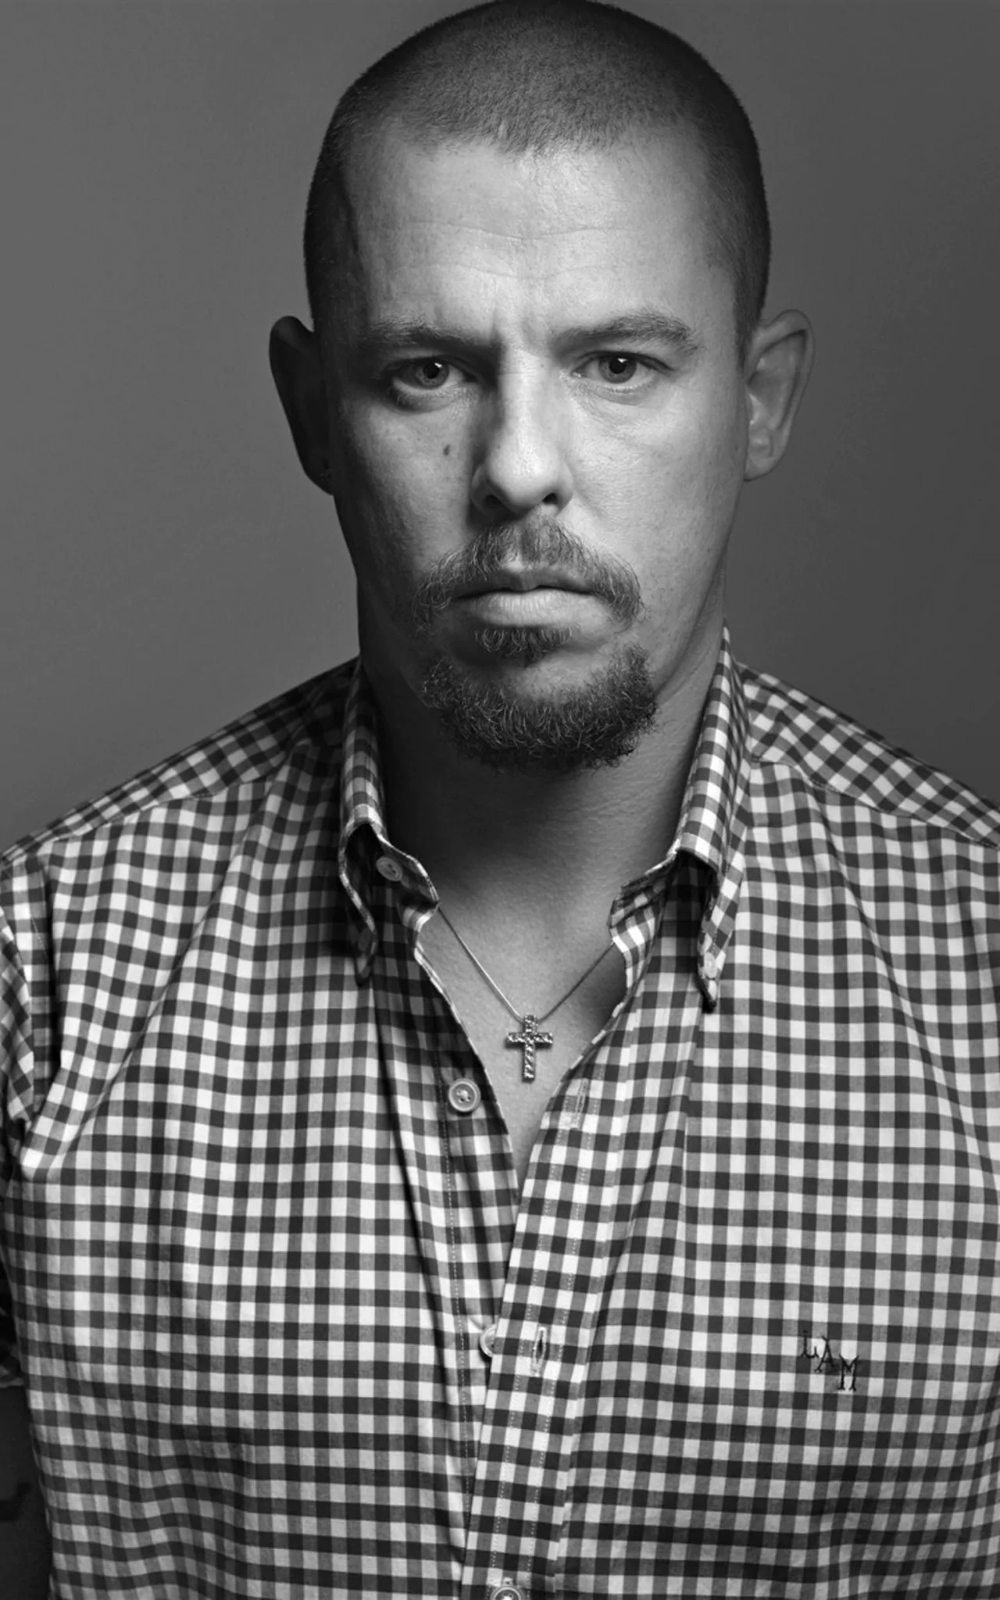 The life and rise of legendary designer Alexander McQueen